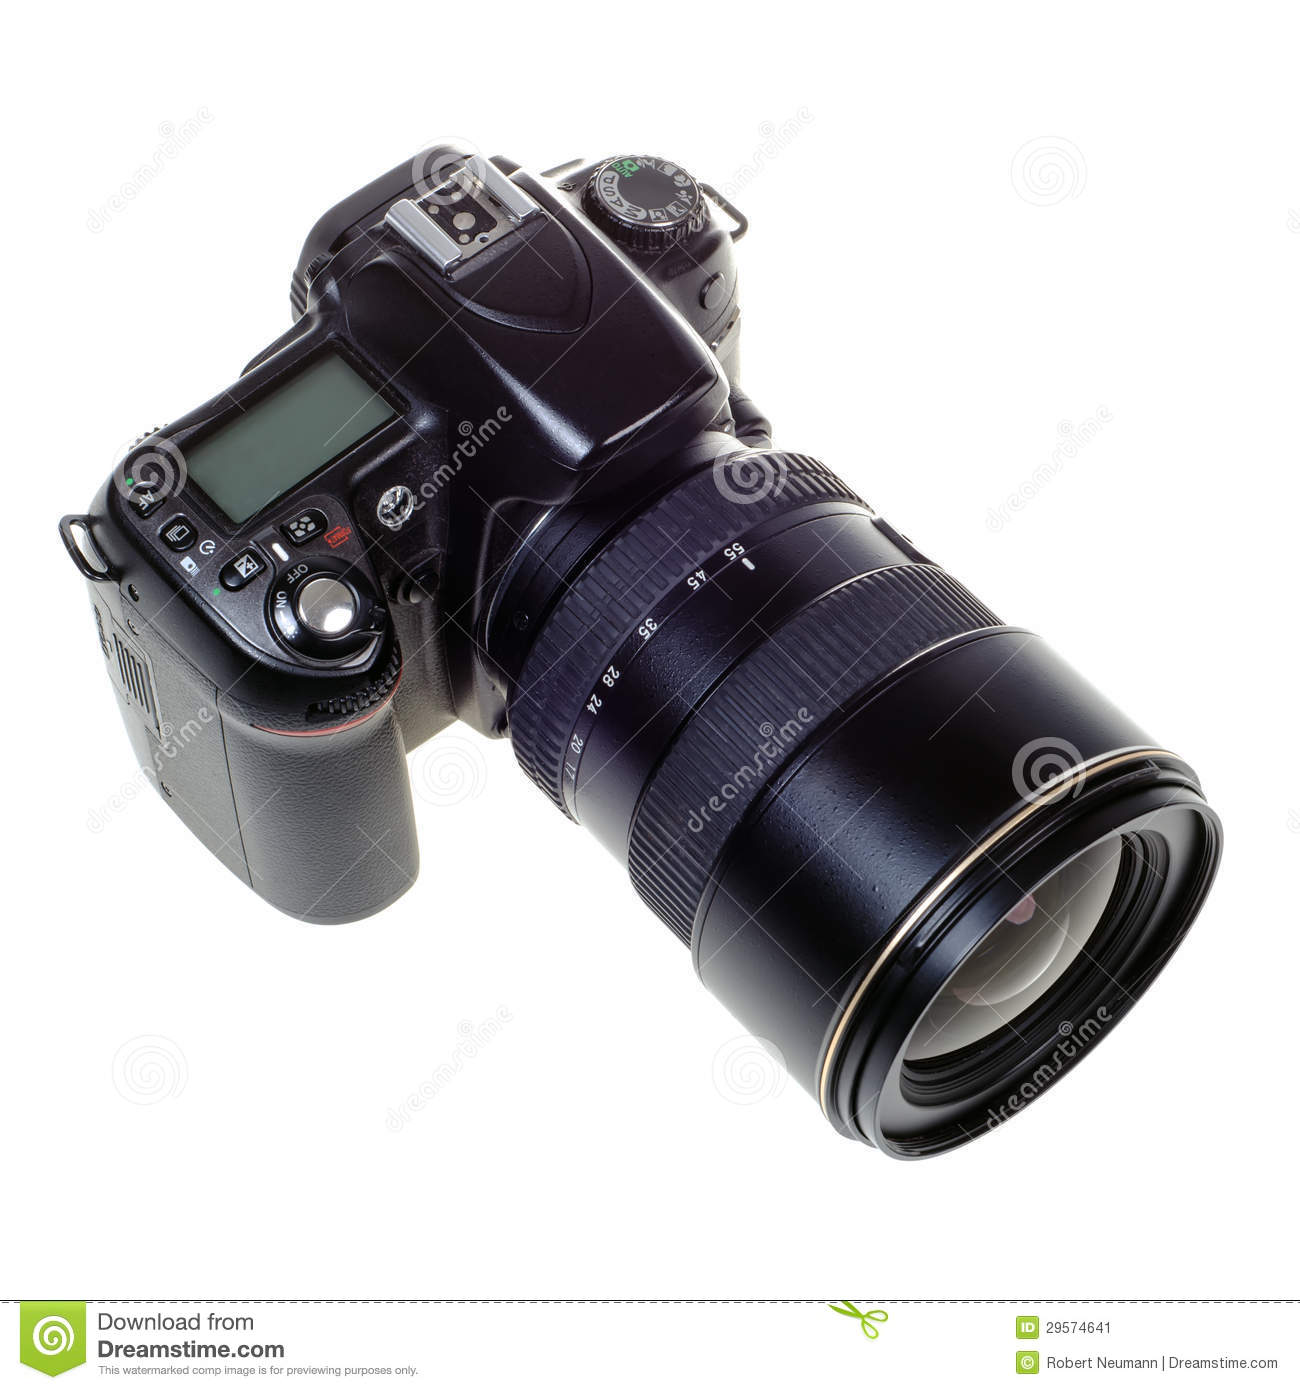 digital single lens reflex camera A digital single lens reflex (dslr) camera is provided for displaying predetermined photographing information, including focus information, camera information, etc, on a display screen of a viewfinder.